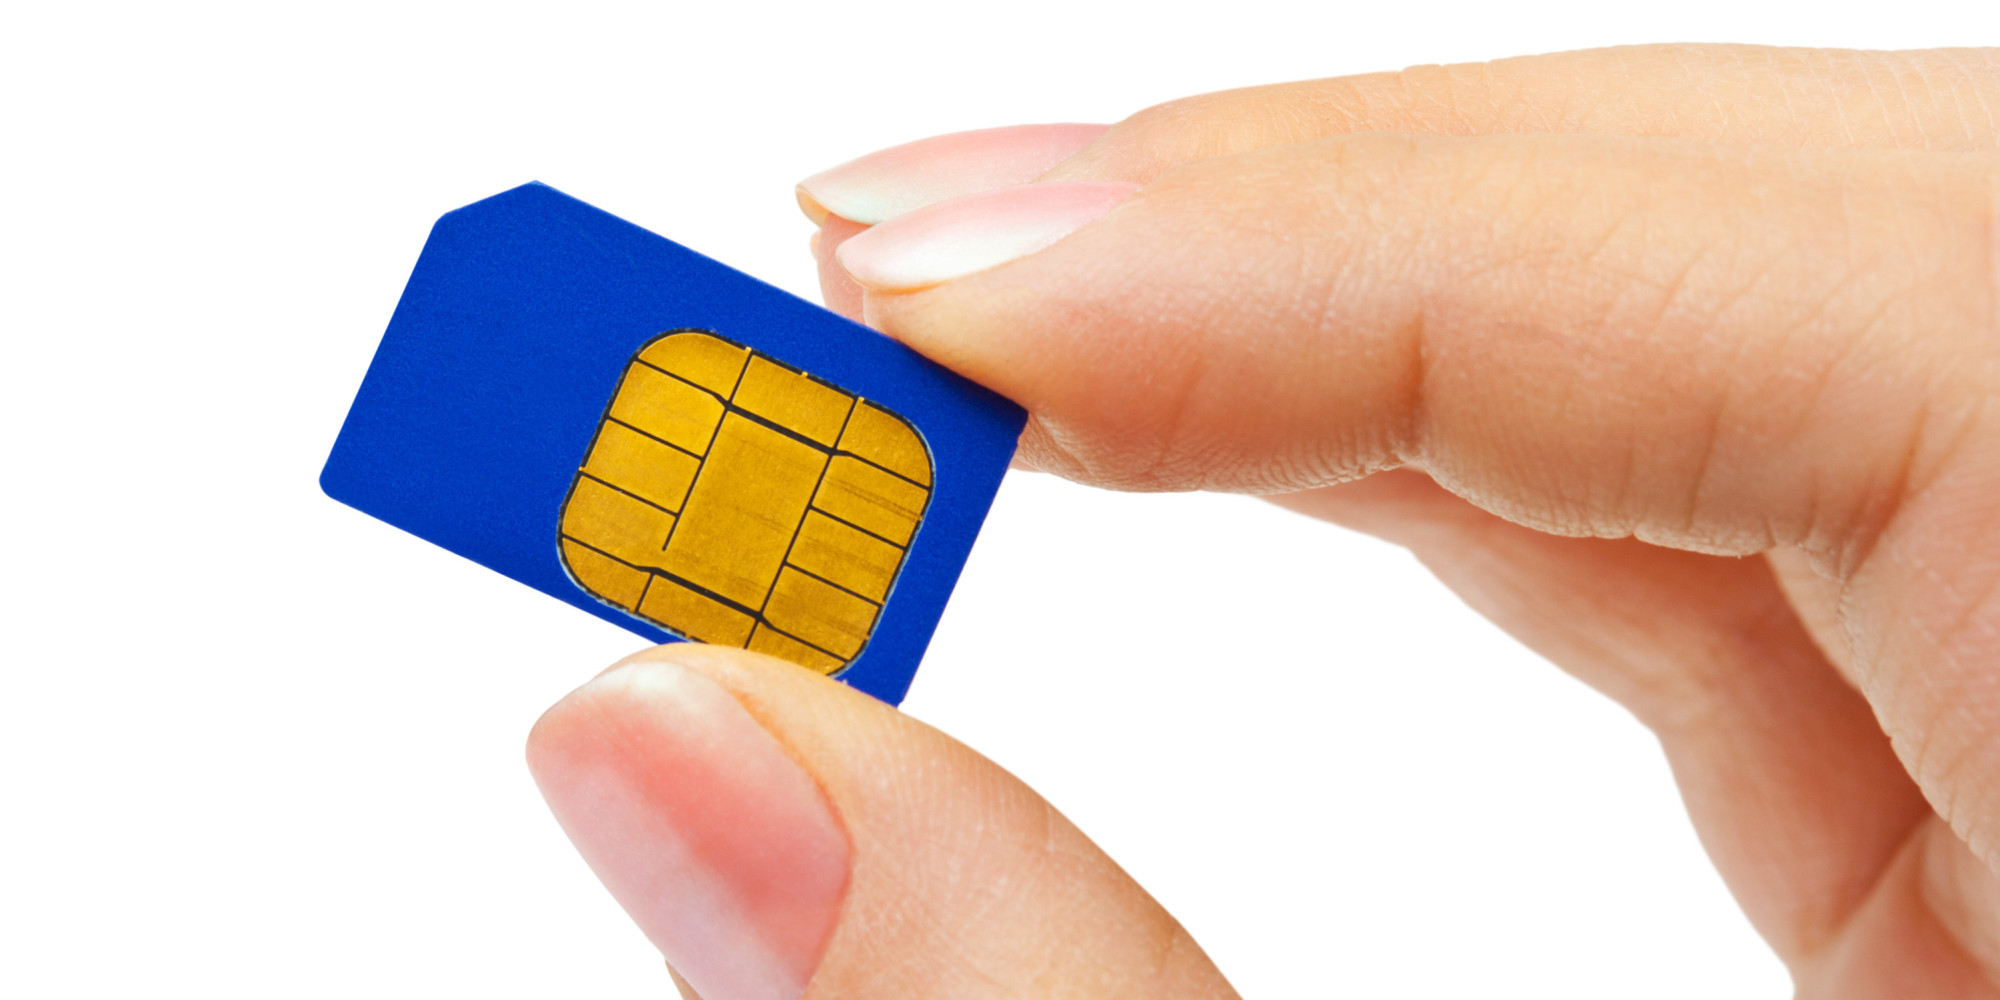 How To Get The Best Sim-Only Deal | HuffPost UK